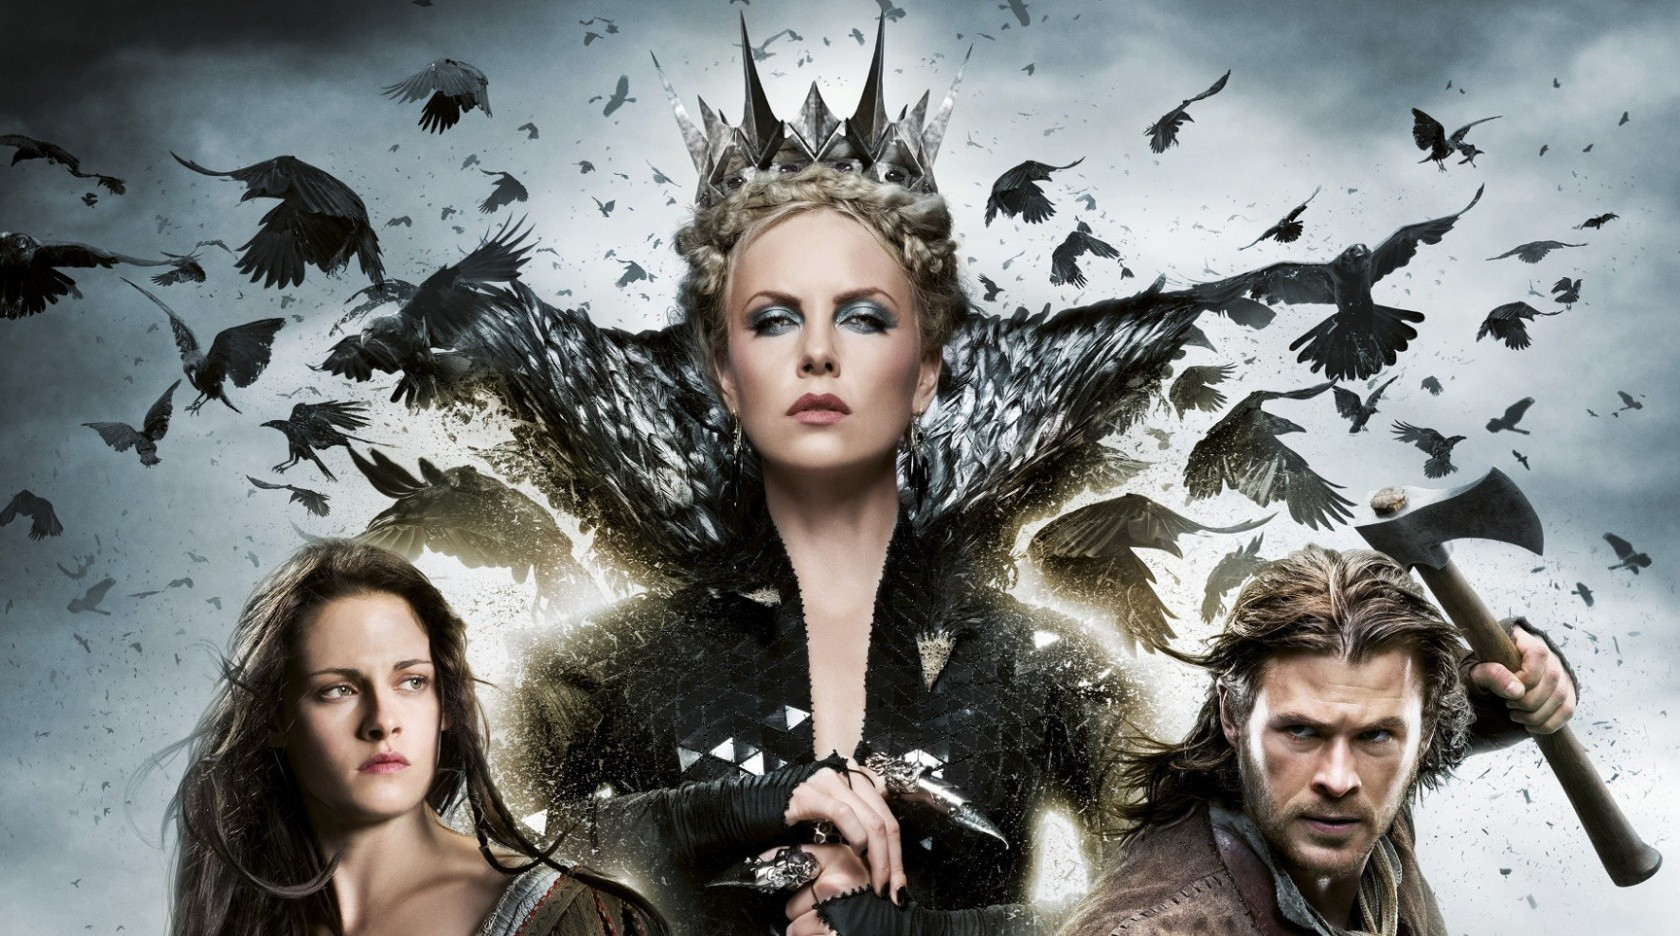 Snow-White-The-Huntsman-snow-white-and-the-huntsman-30959182-1680-1050